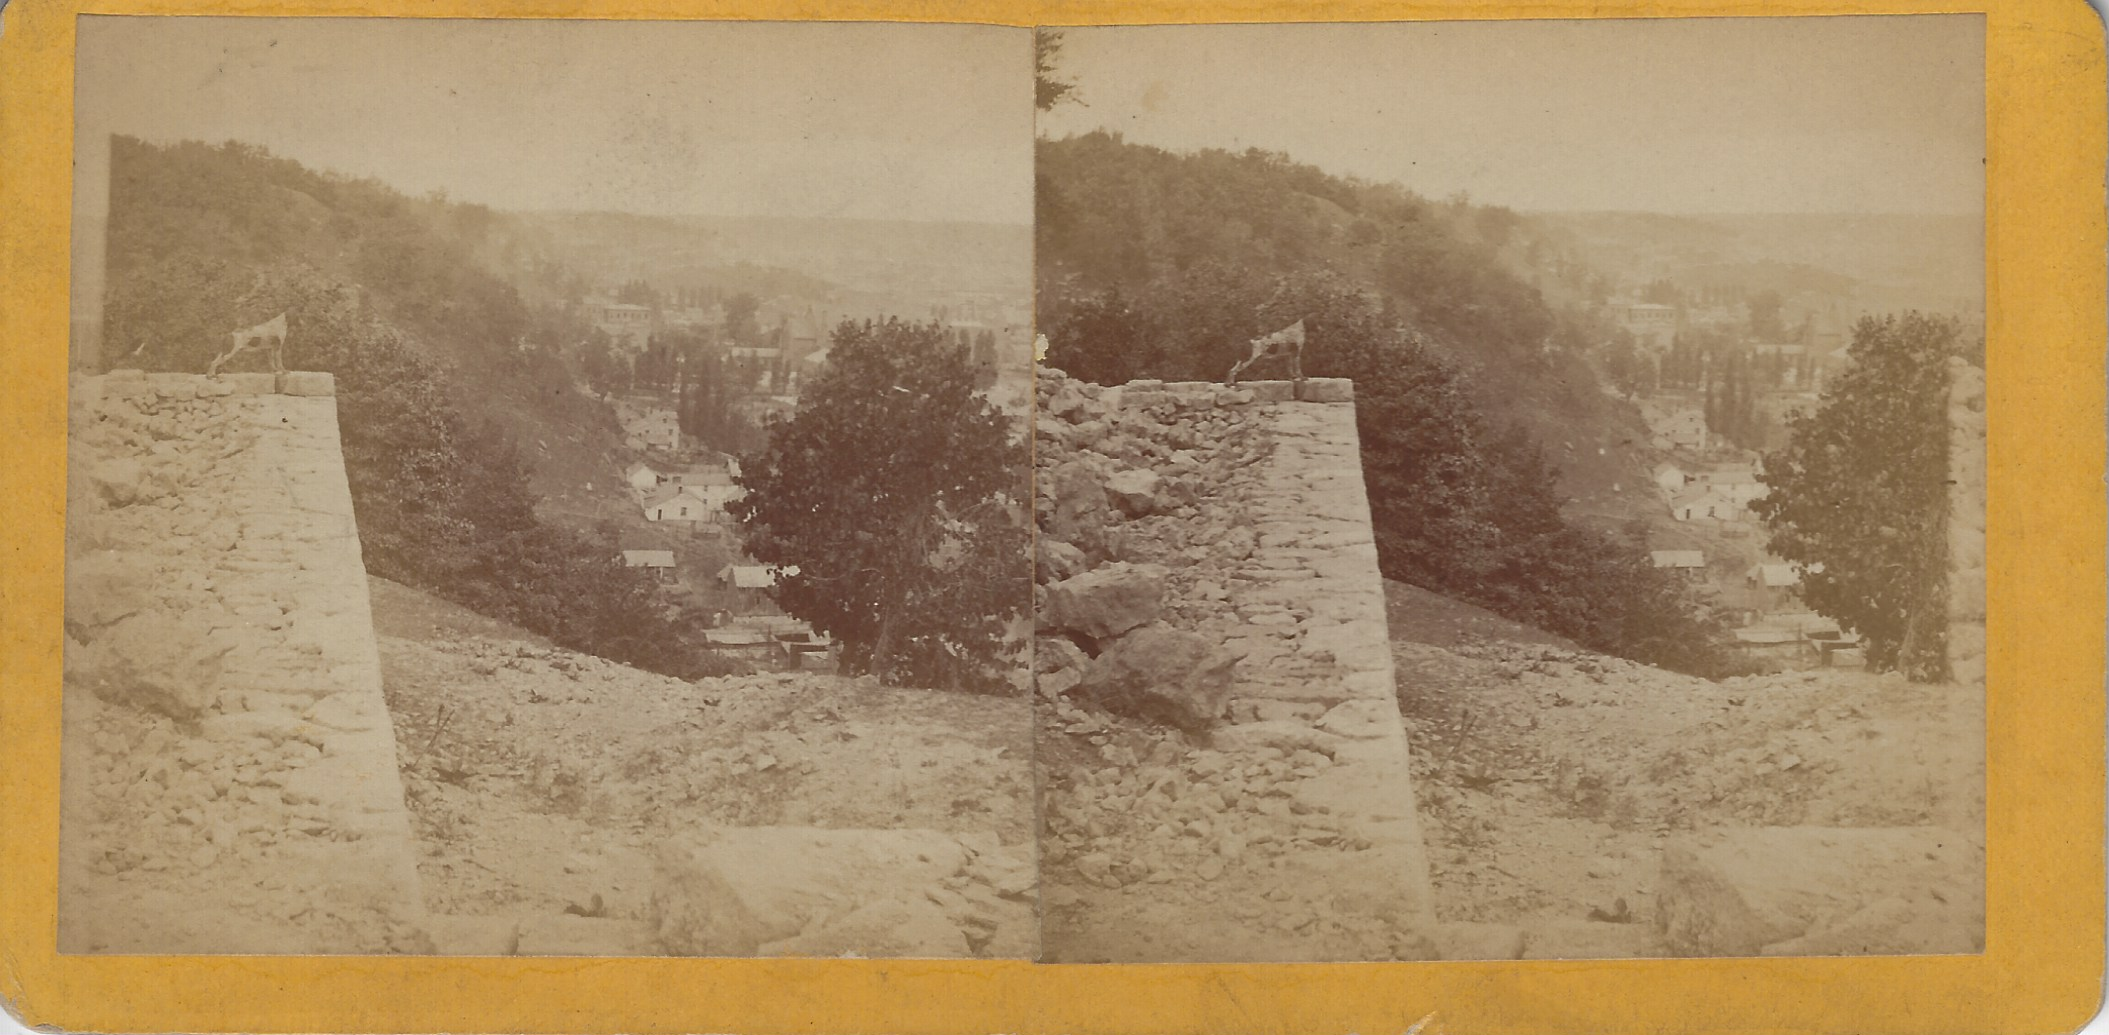 LJTP 100.255 - S. Root - Potter Hill looking North with Dog - c1870